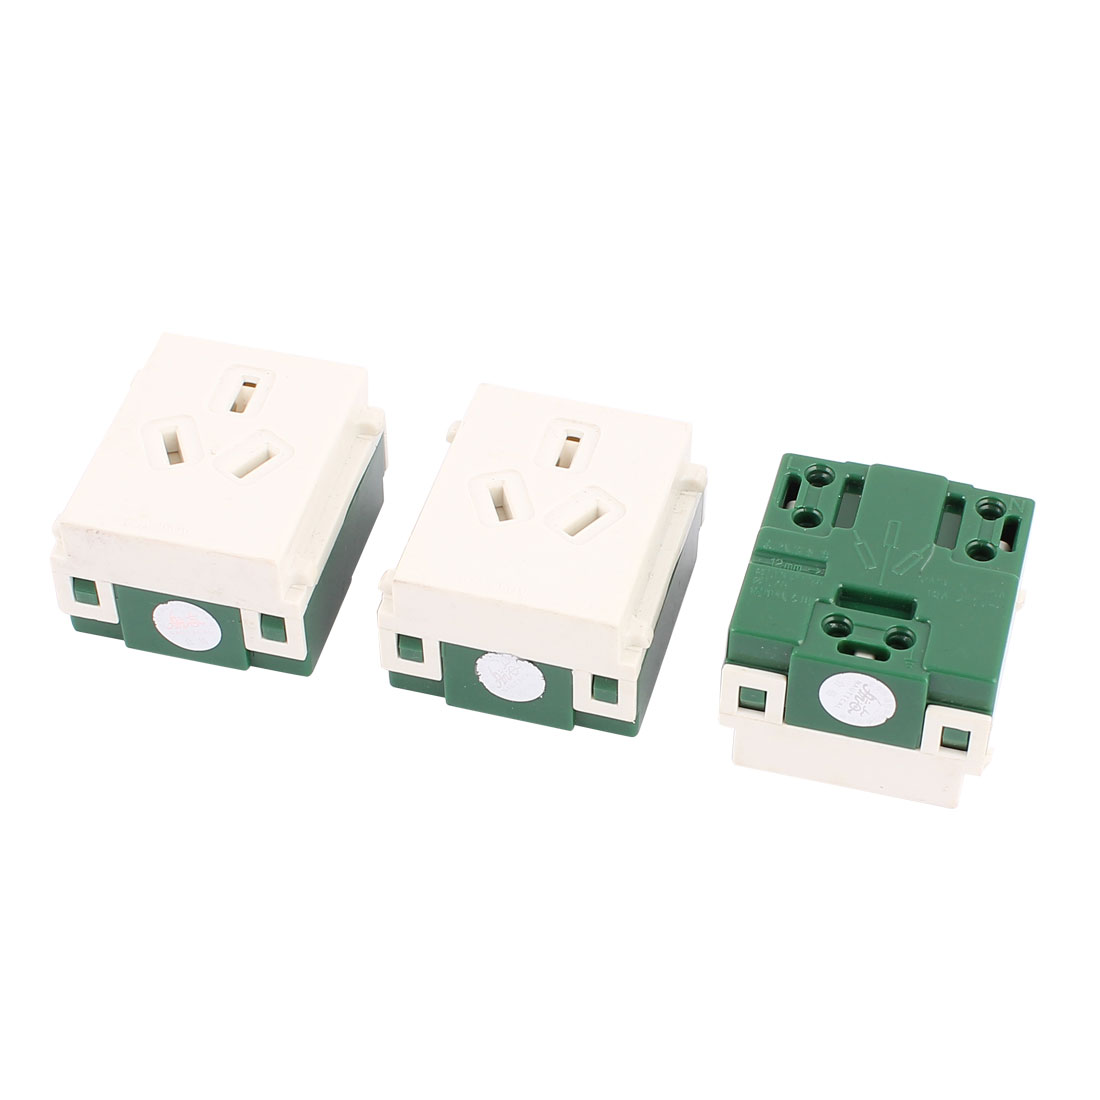 3 Pcs 250VAC 10A AU Socket Electrical Modular Power Outlet for 86 Wall Plate Panel